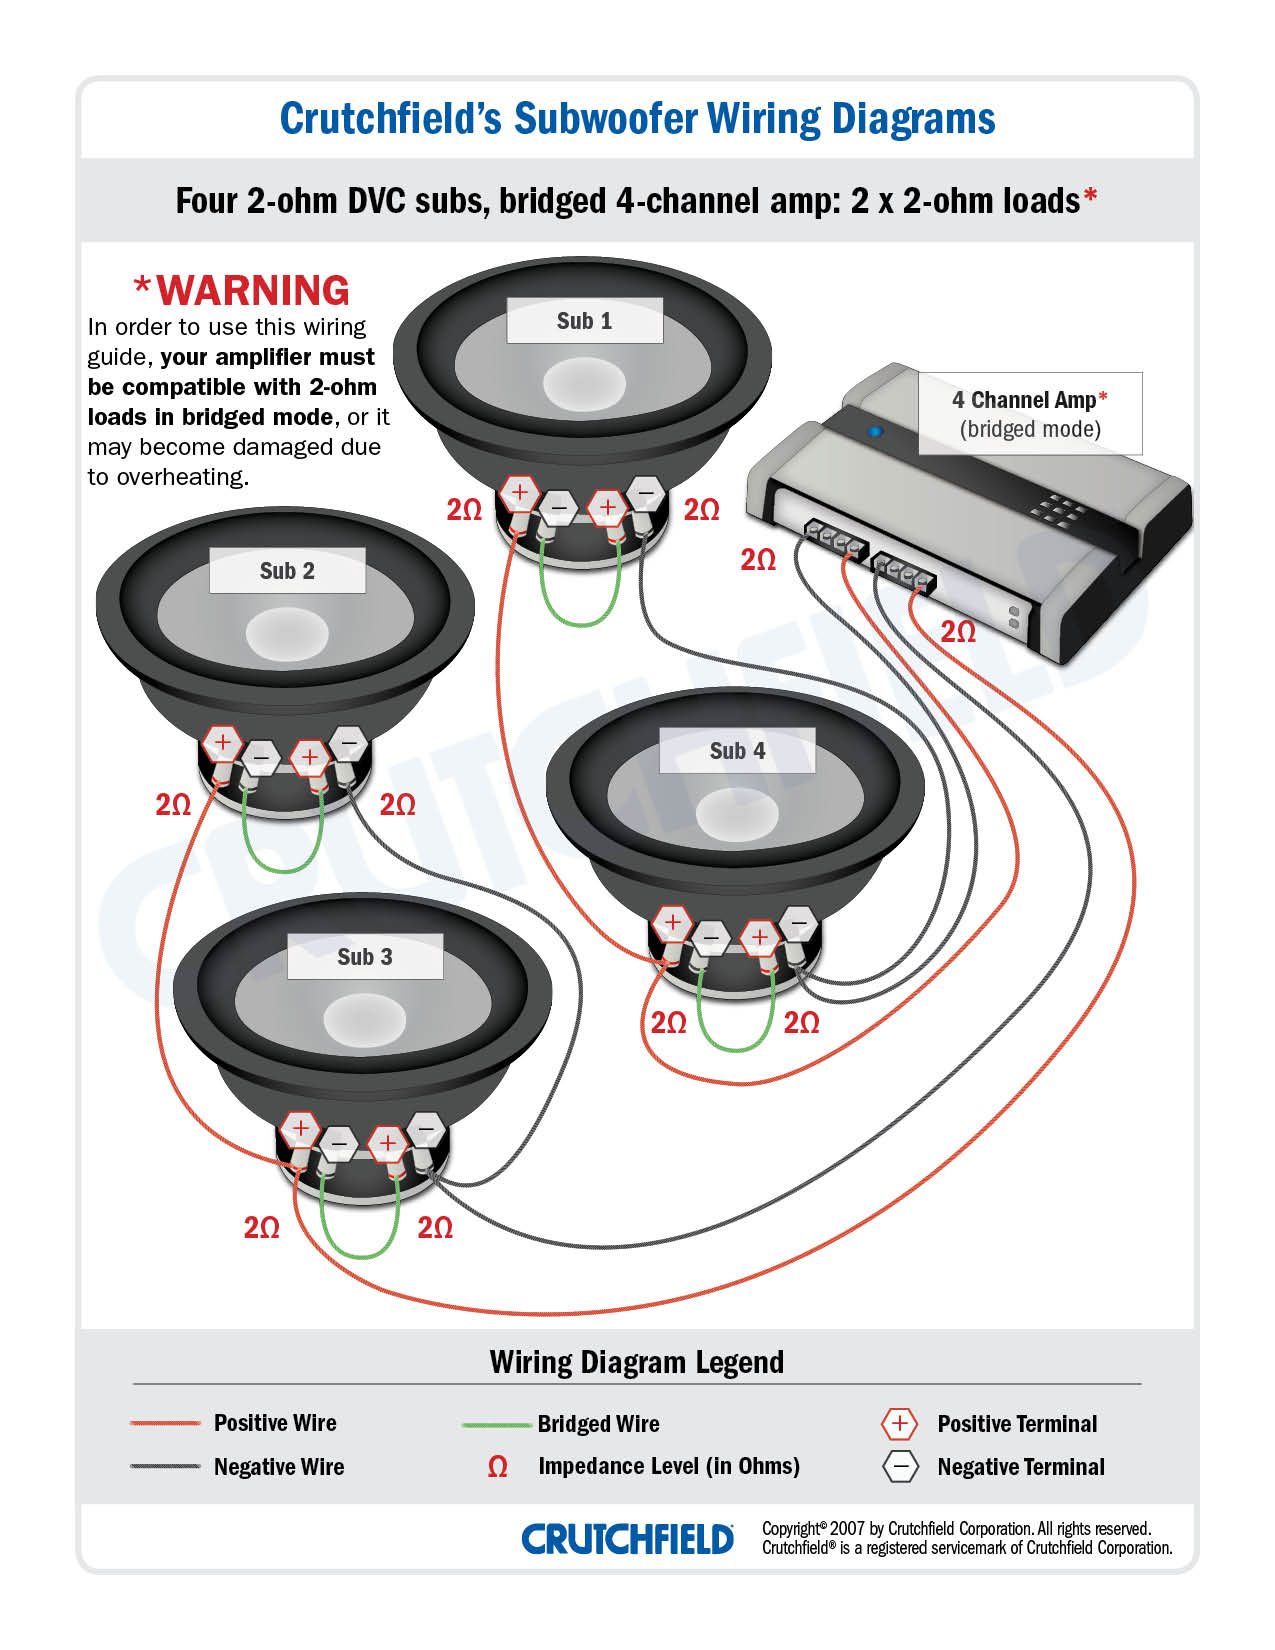 4 DVC 2 ohm 4 ch low imp subwoofer wiring diagrams car audio system wiring diagram at eliteediting.co